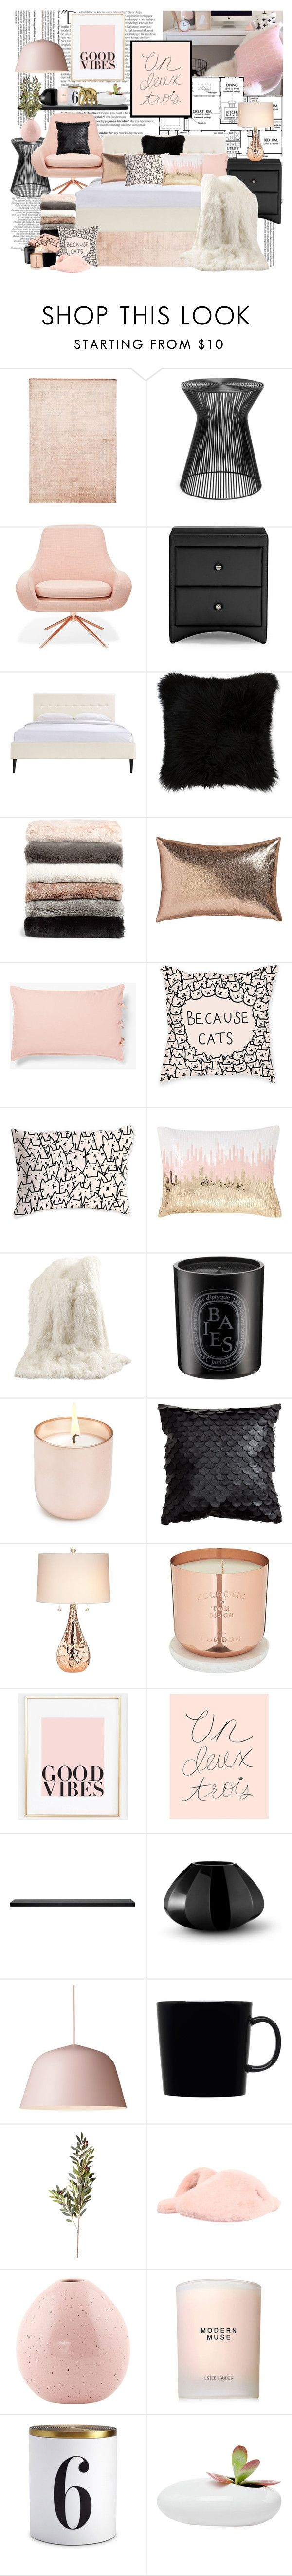 """good vibes bedroom"" by missoumiss on Polyvore featuring interior, interiors, interior design, home, home decor, interior decorating, Balmain, Baxton Studio, Steel 